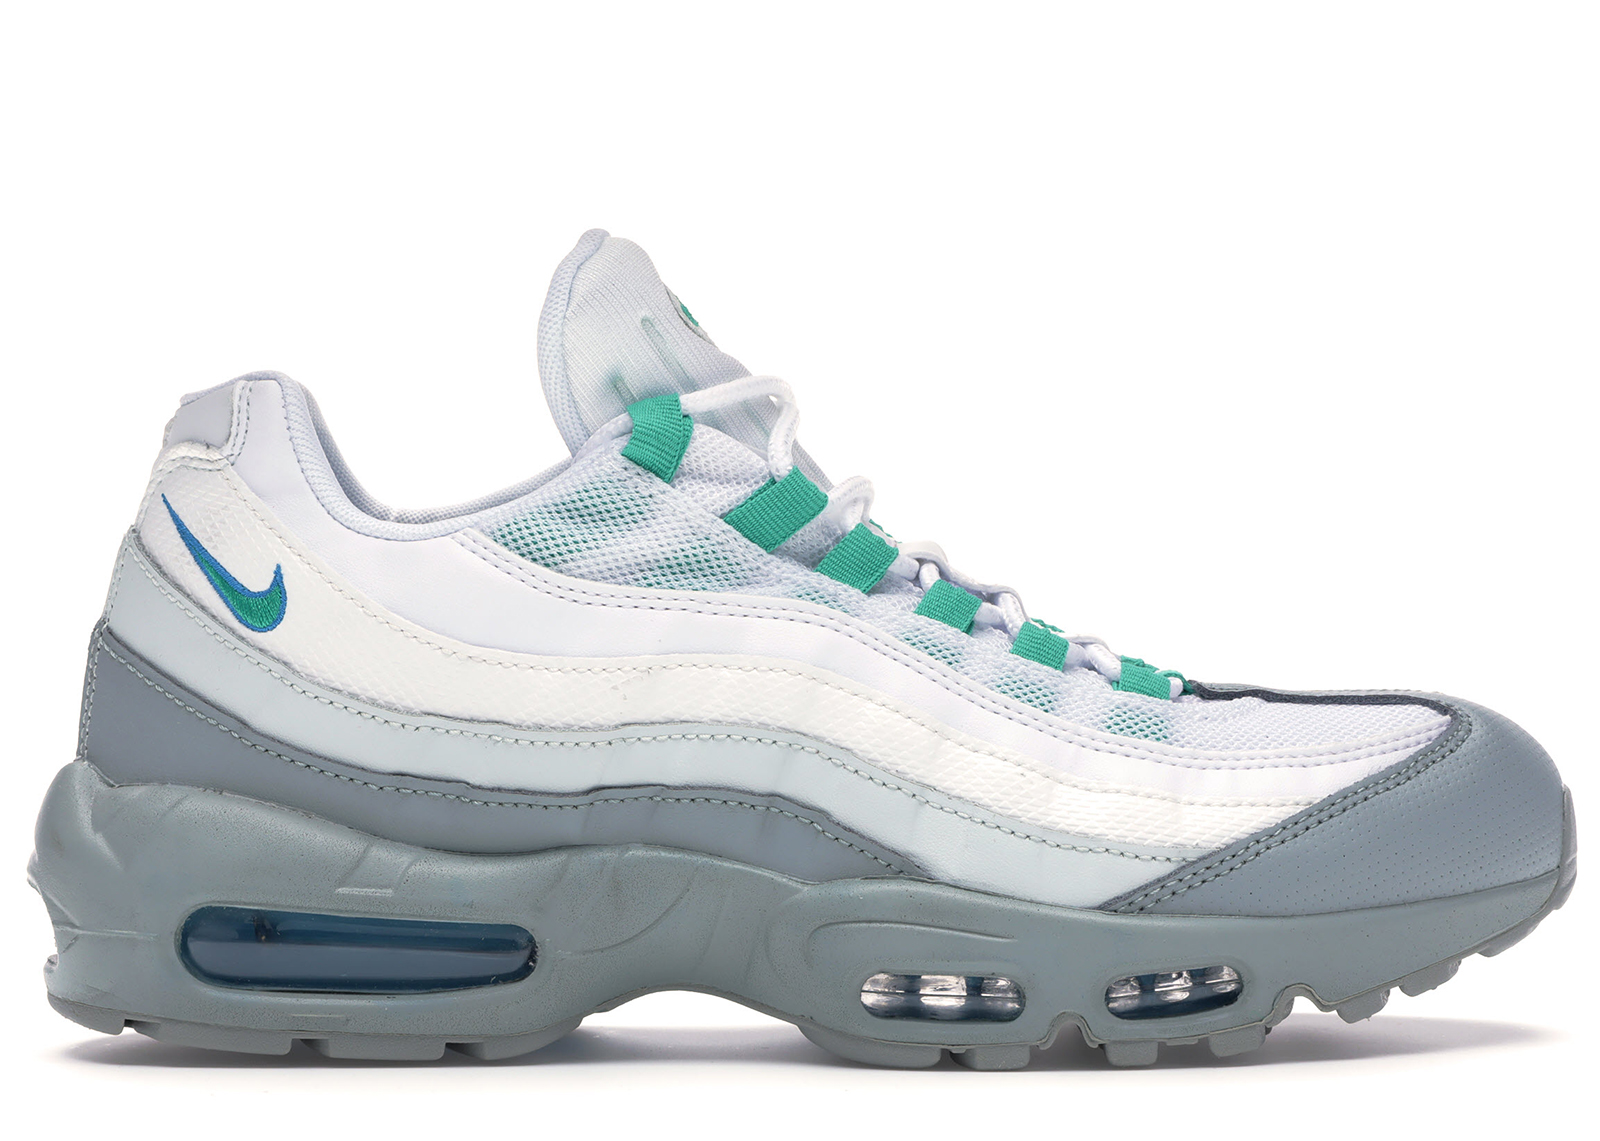 Air Max 95 Light Pumice Clear Emerald